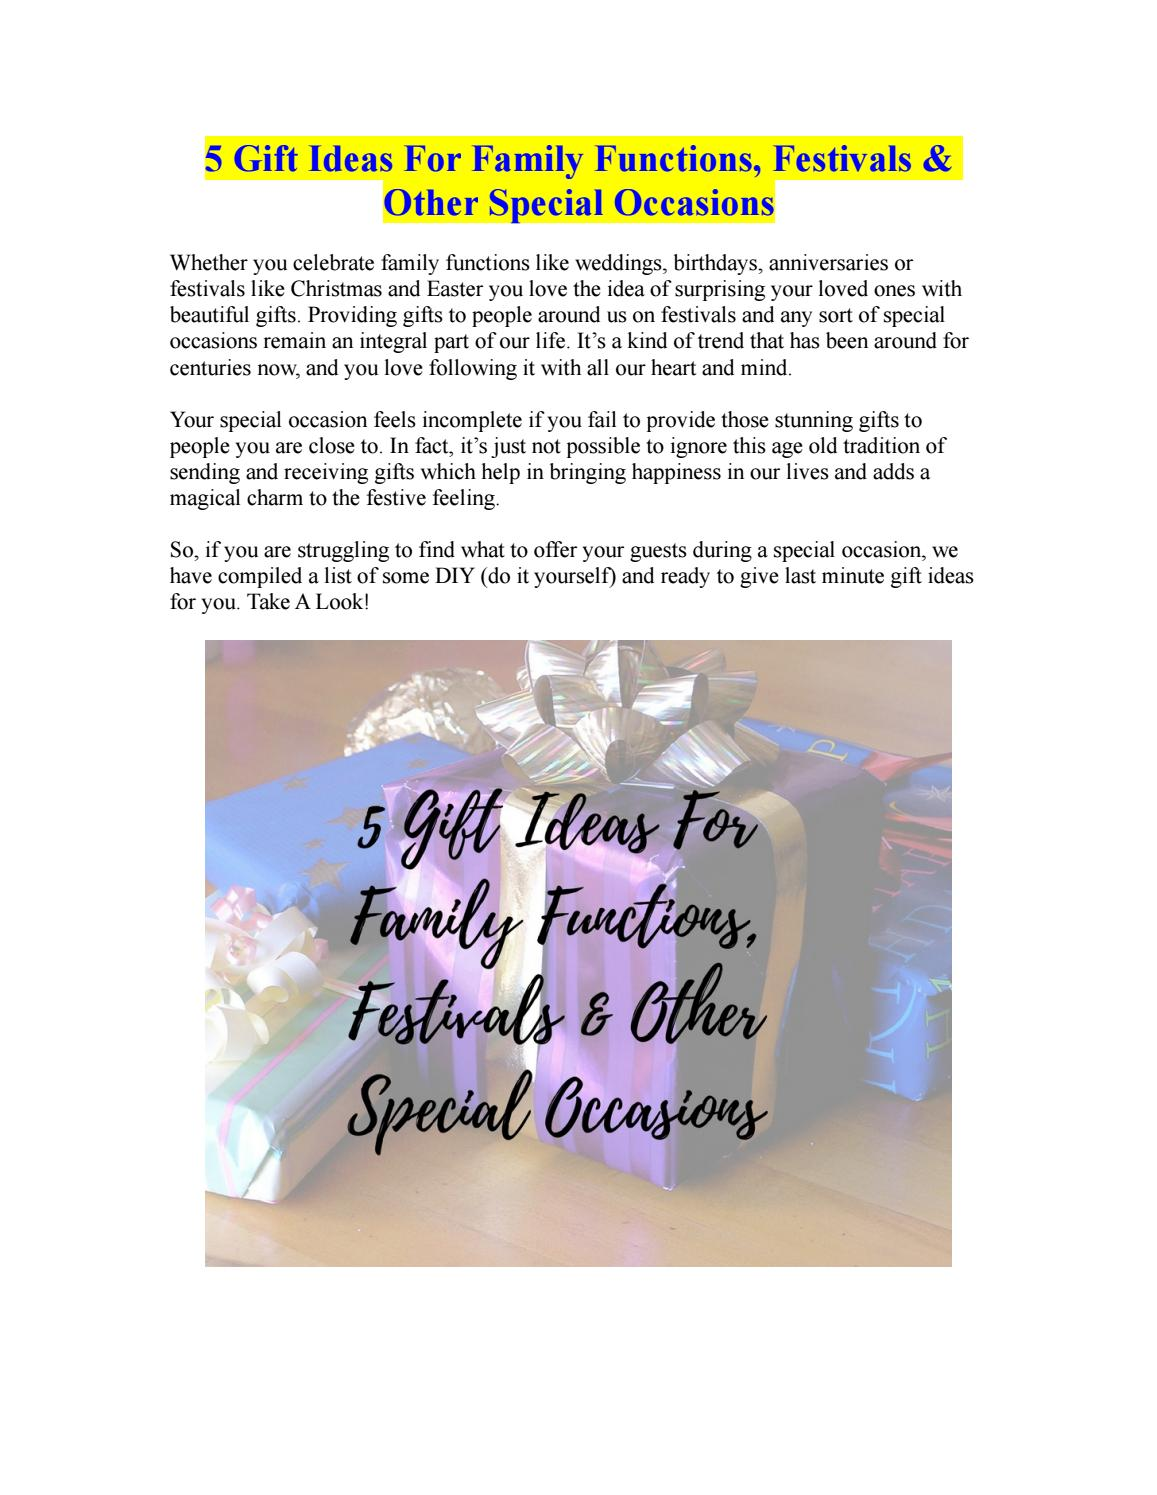 5 gift ideas for family functions festivals other special 5 gift ideas for family functions festivals other special occasions by elizabethsmith issuu negle Image collections